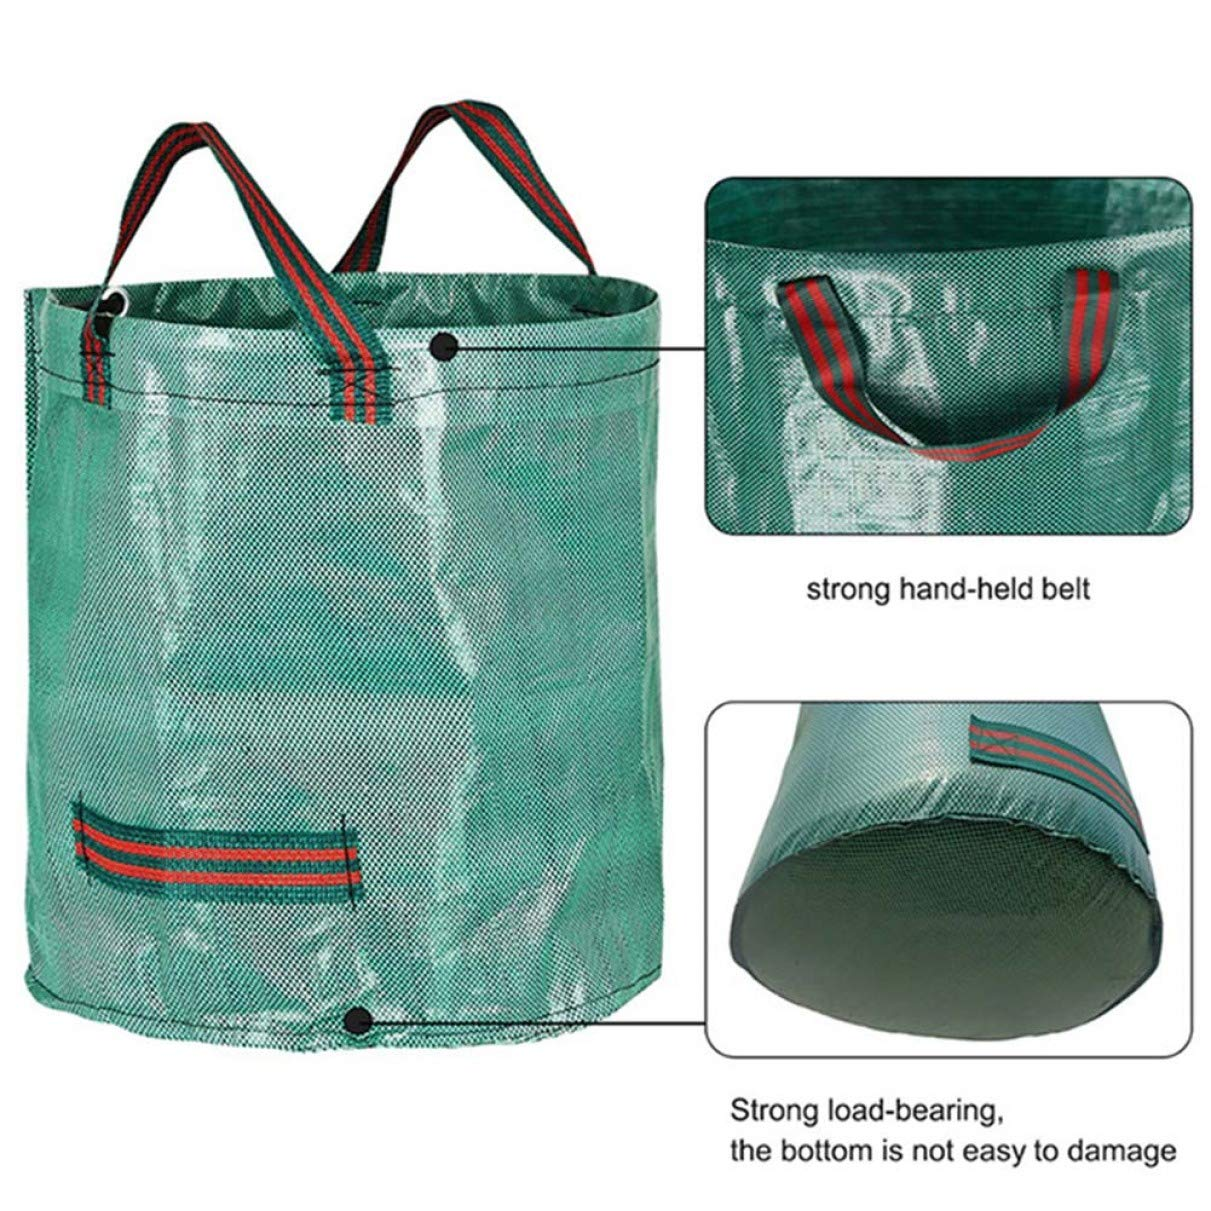 None 5 Picture Color Venus FitzGerald Sturdy Heavy Duty Garden Waste Bag Reusable Waterproof Refuse Sack for Leaves Grass Bin